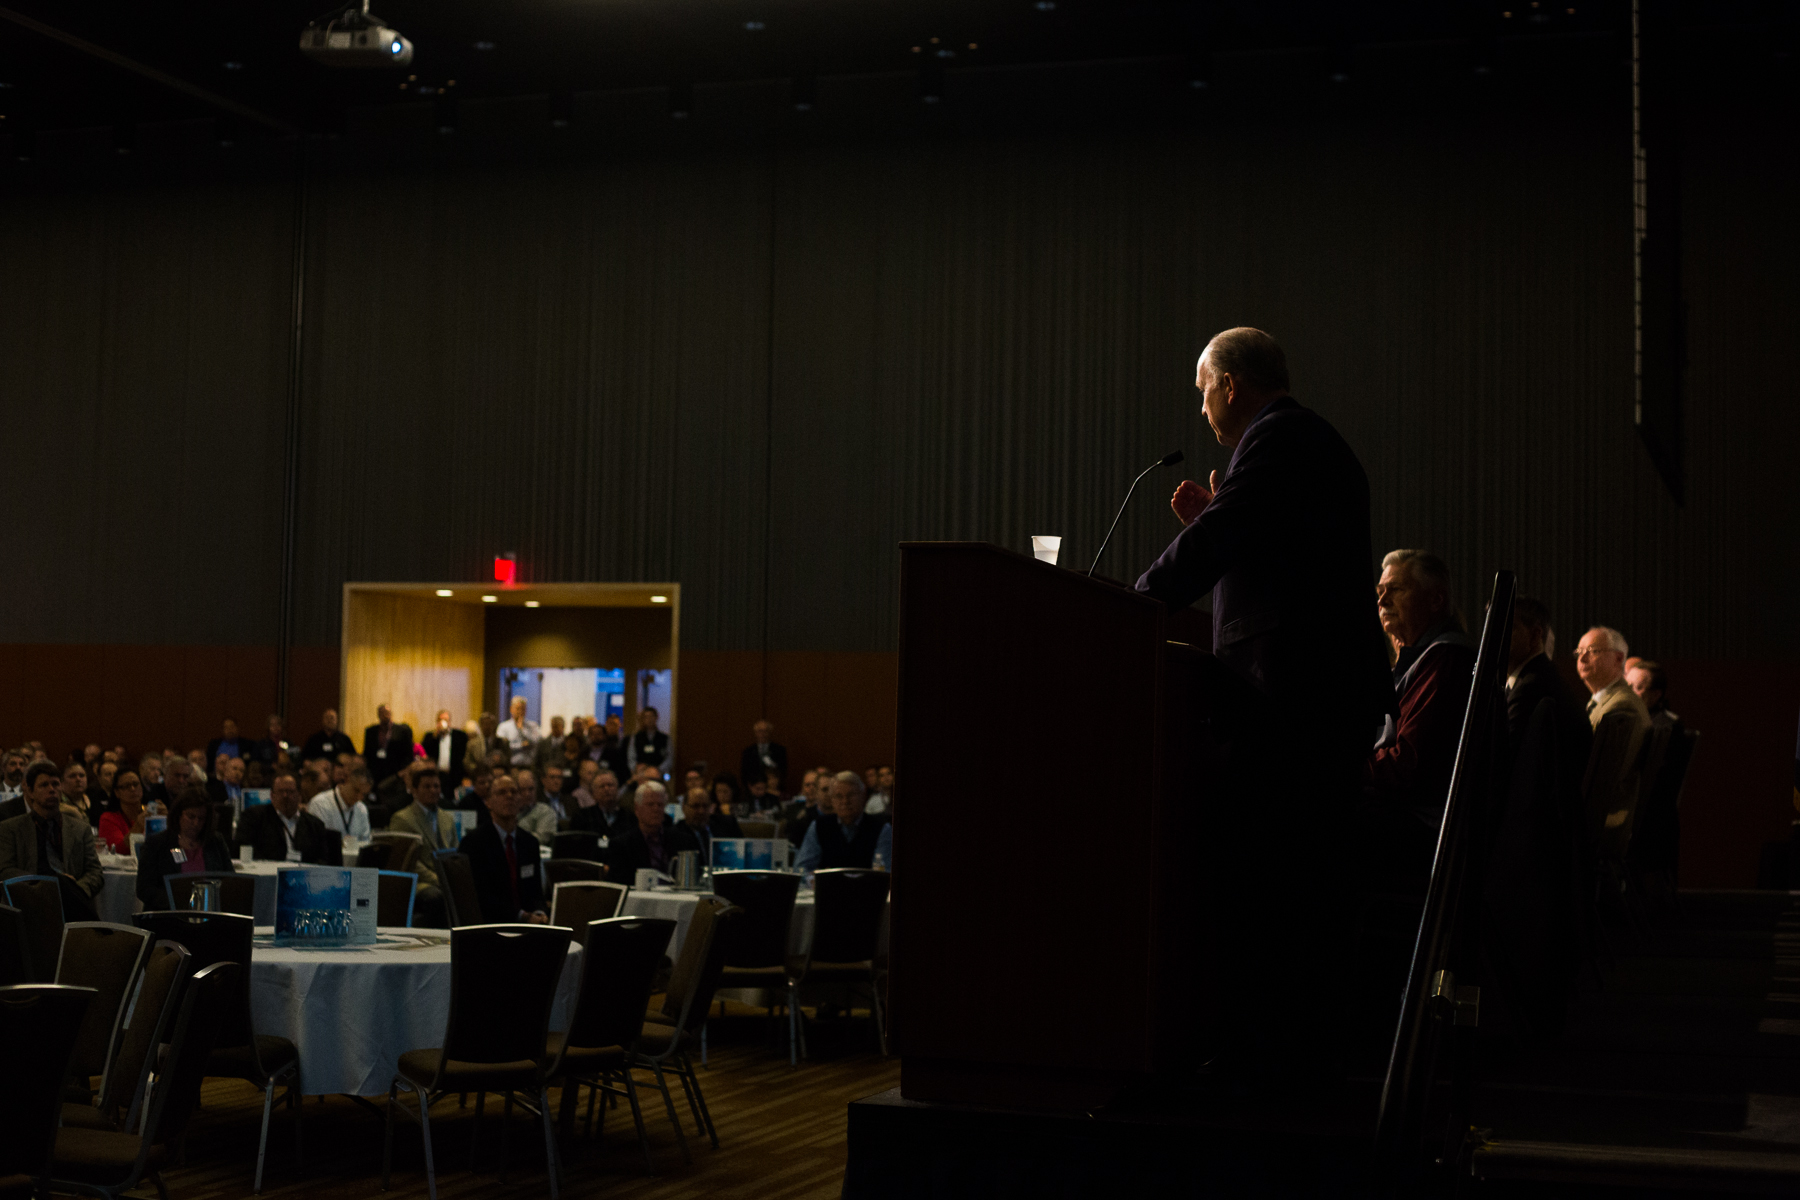 Alaska Governor Elect Bill Walker delivered remarks at the 35th Alaska Resources Conference held by the Resource Development Council of Alaska at the Dena'ina Center in Anchorage, Alaska on Thursday, November 20, 2014.